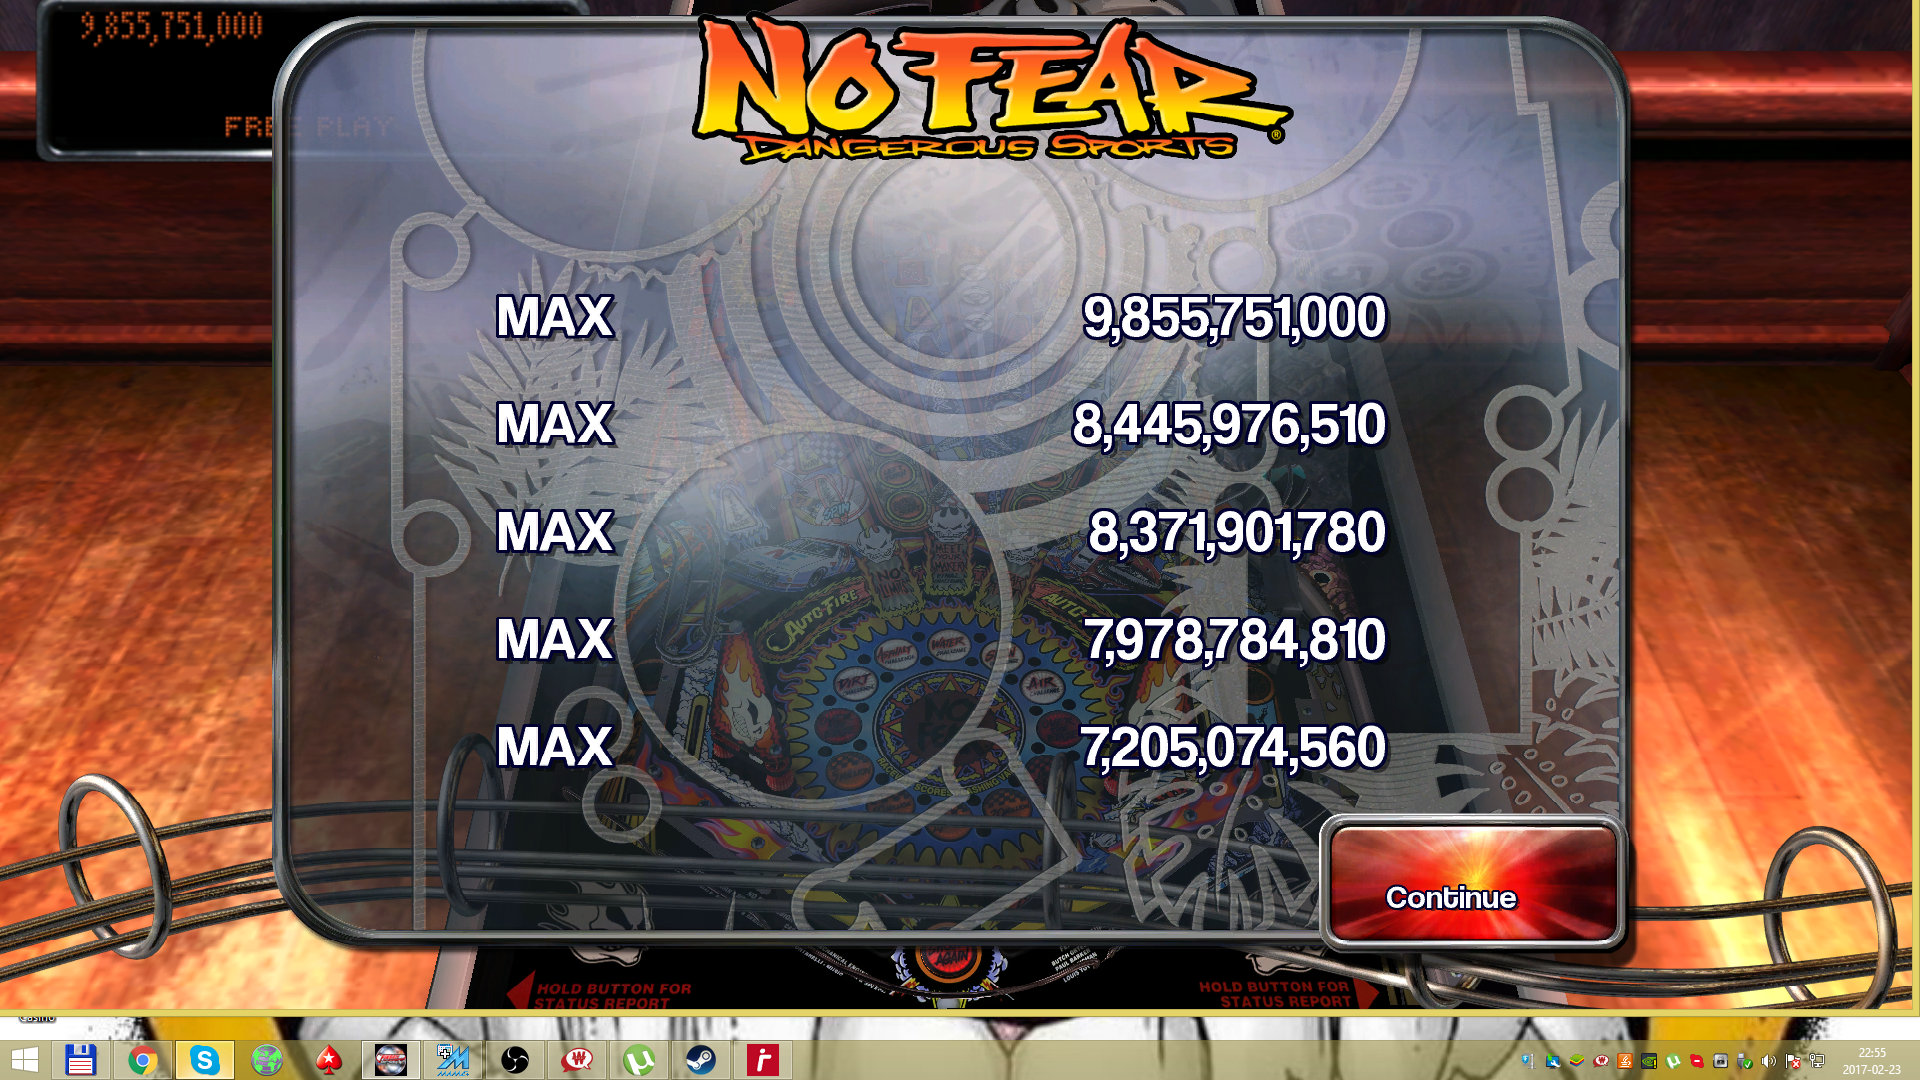 Pinball Arcade: No Fear: Dangerous Sports